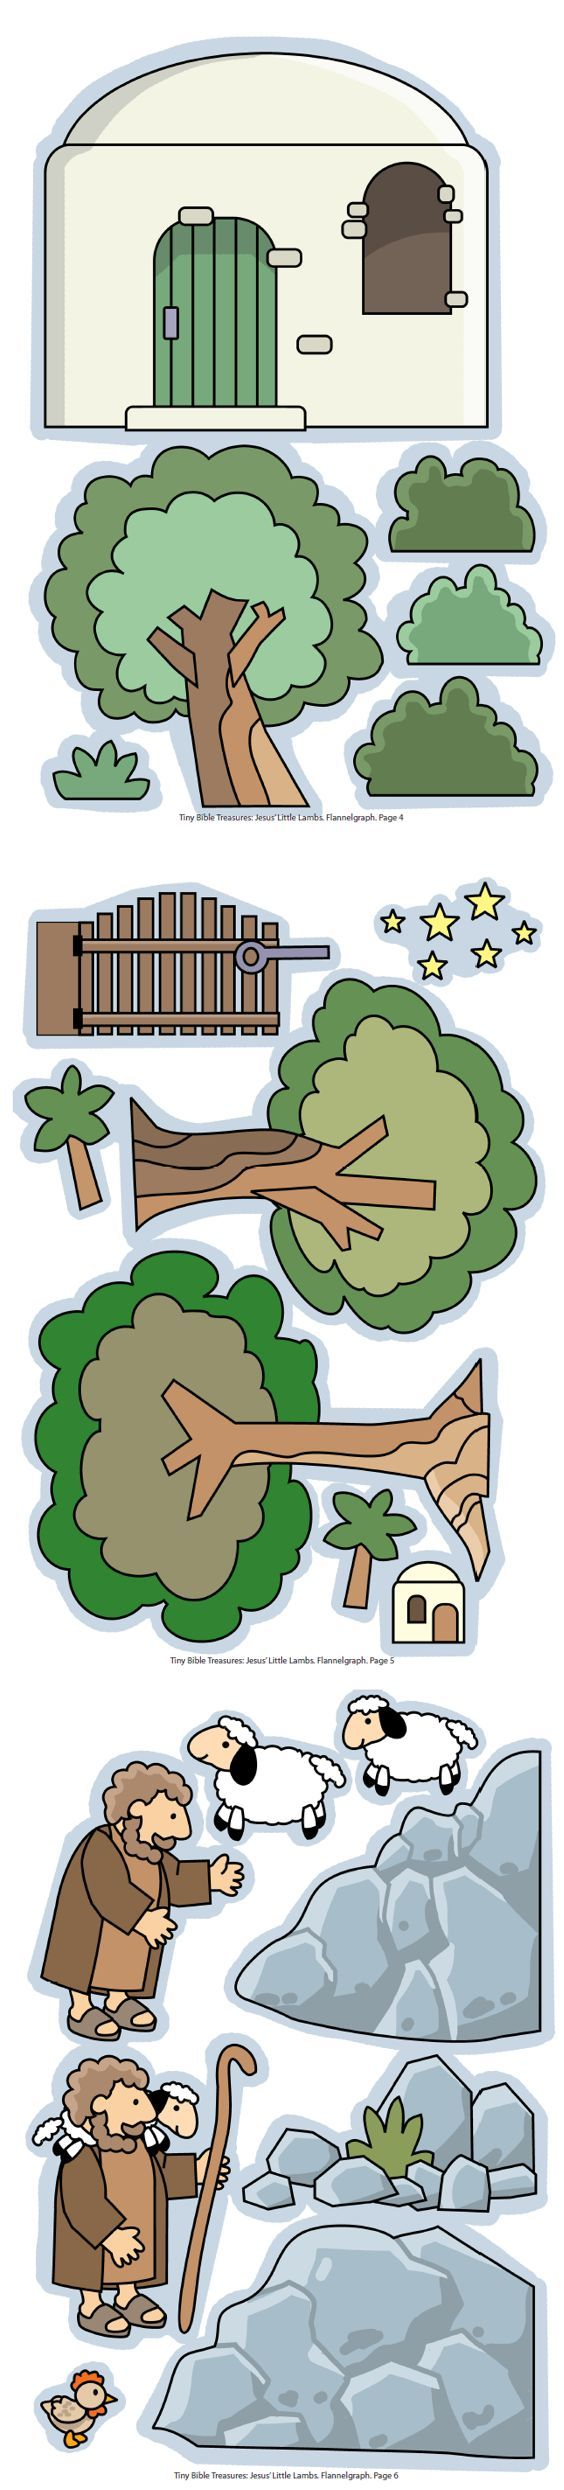 De Goede Herder, flanelplaten voor kleuters, kleuteridee.nl , The Good Shepherd, Flannel Bible Sheets, free printable 2.  I like this for drawing in my journaling Bible.  Nice examples of trees, house, sheep, and shepherd for Bible illustrations.